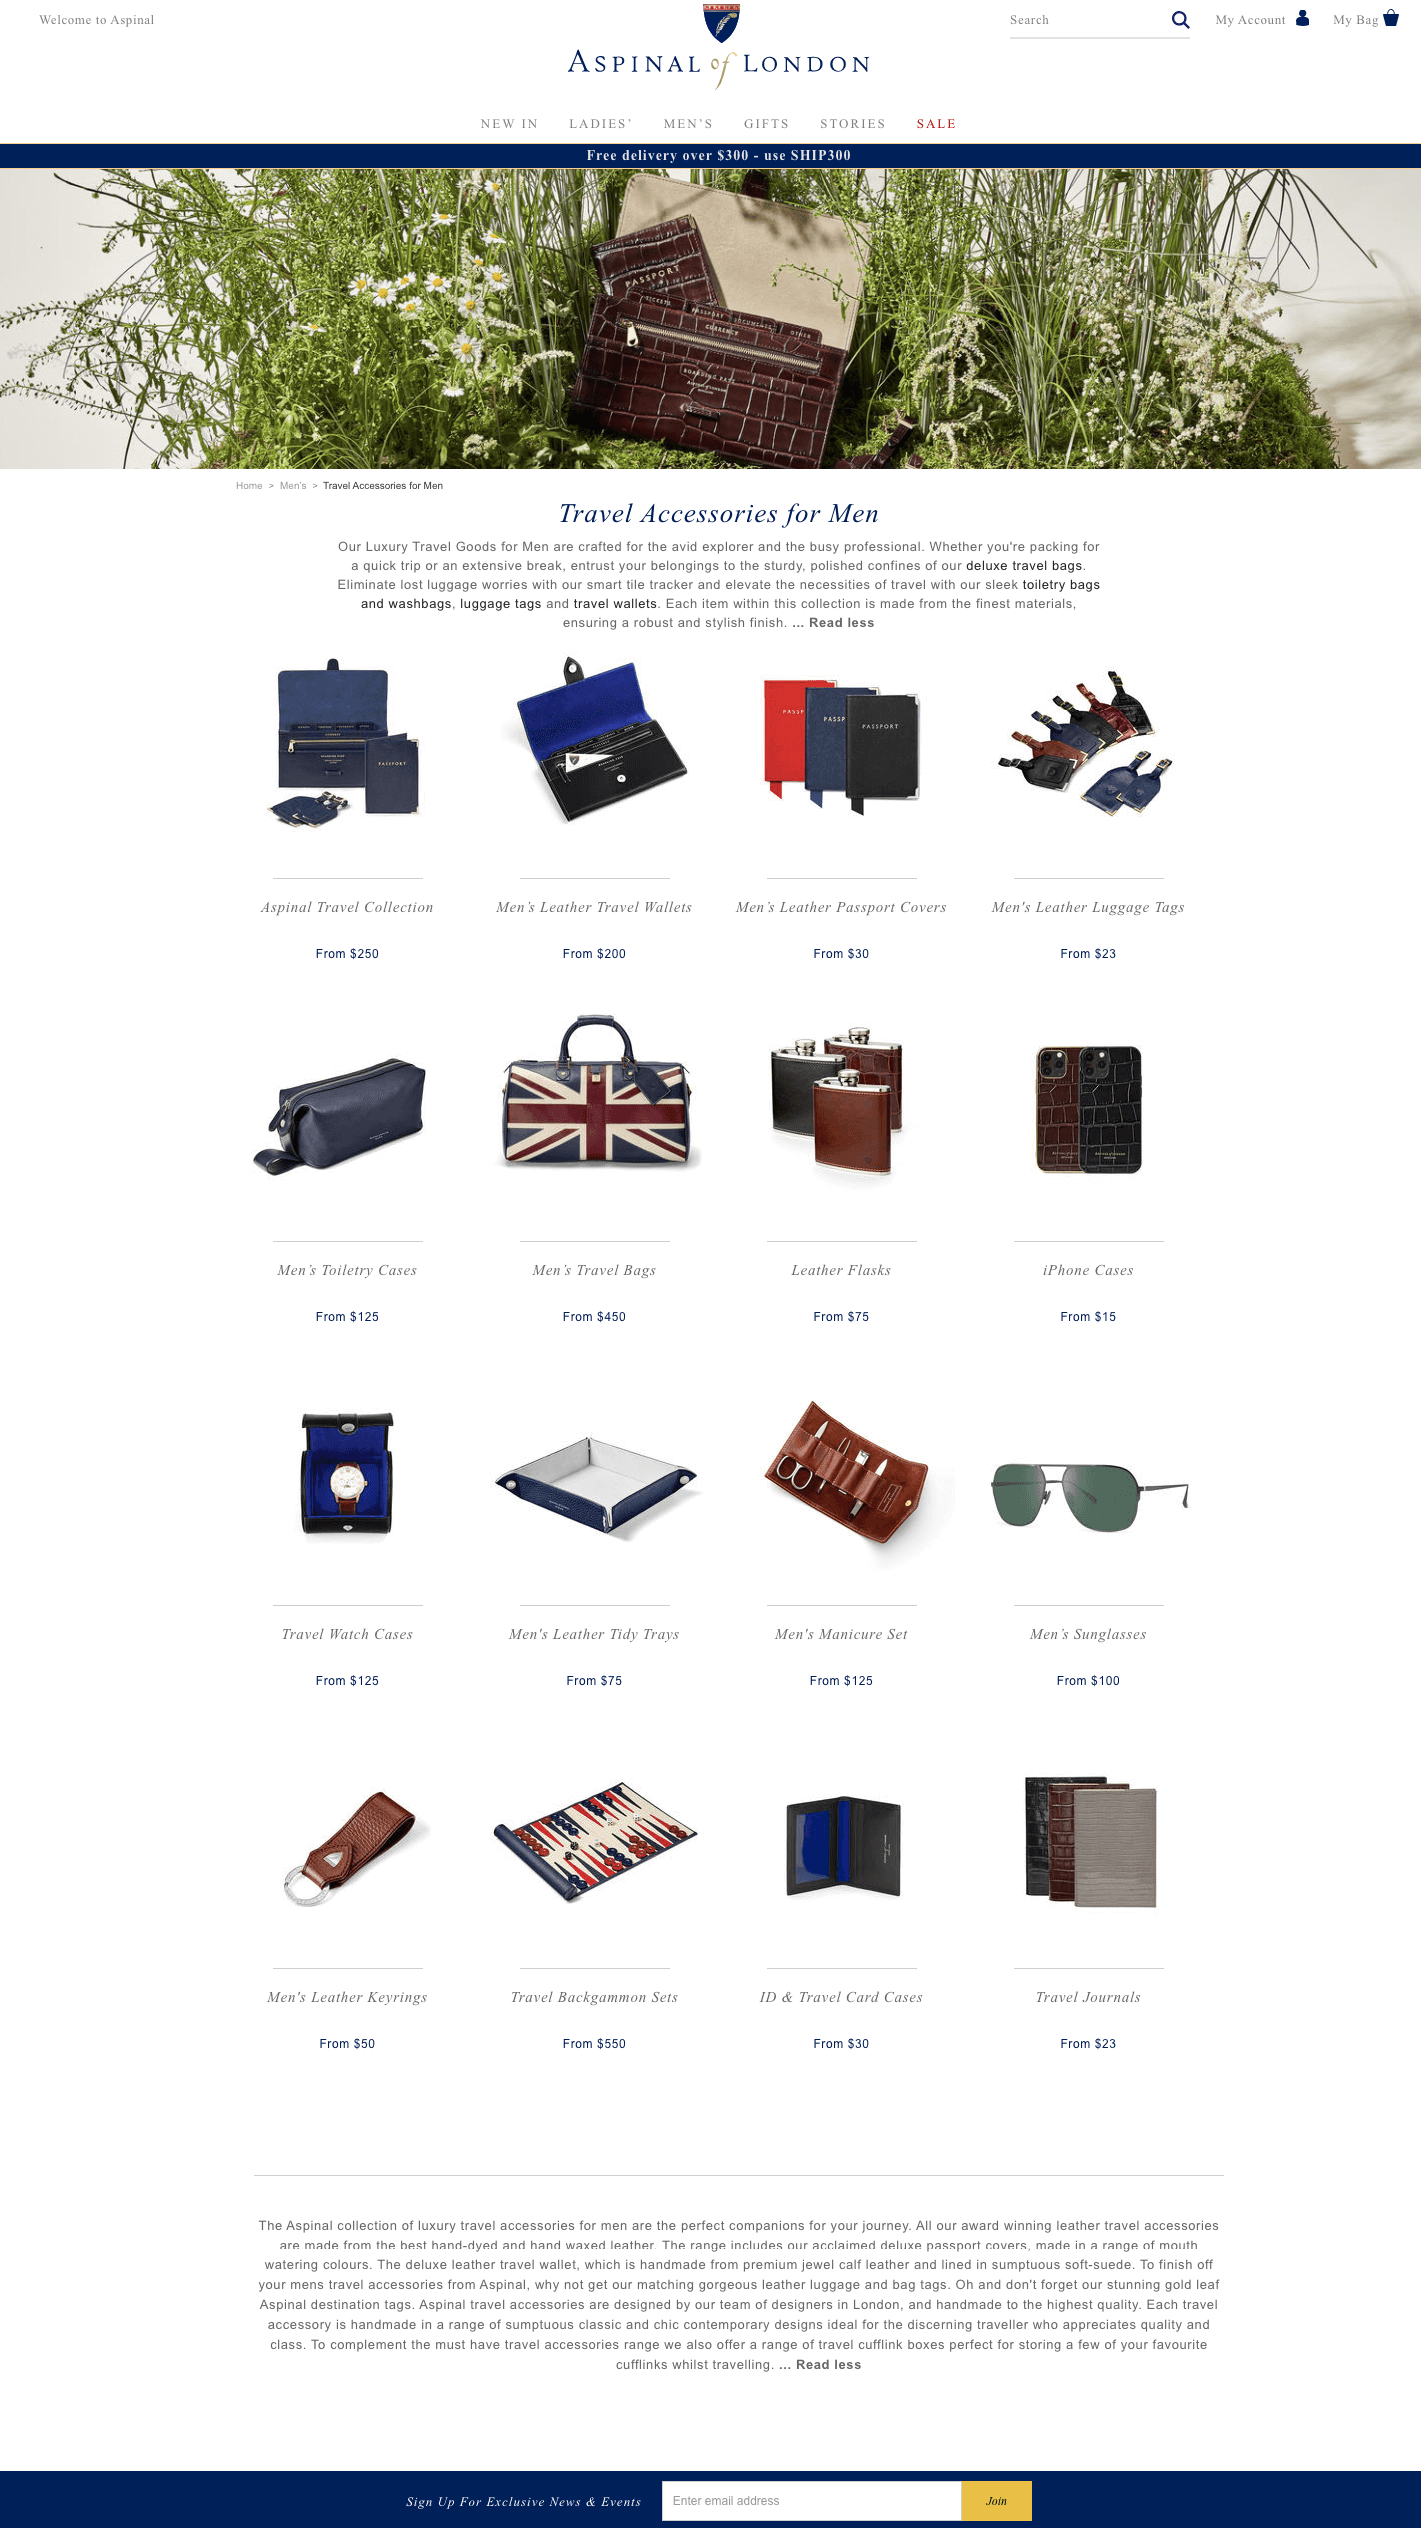 Luxury Travel Accessories for Men Aspinal of London